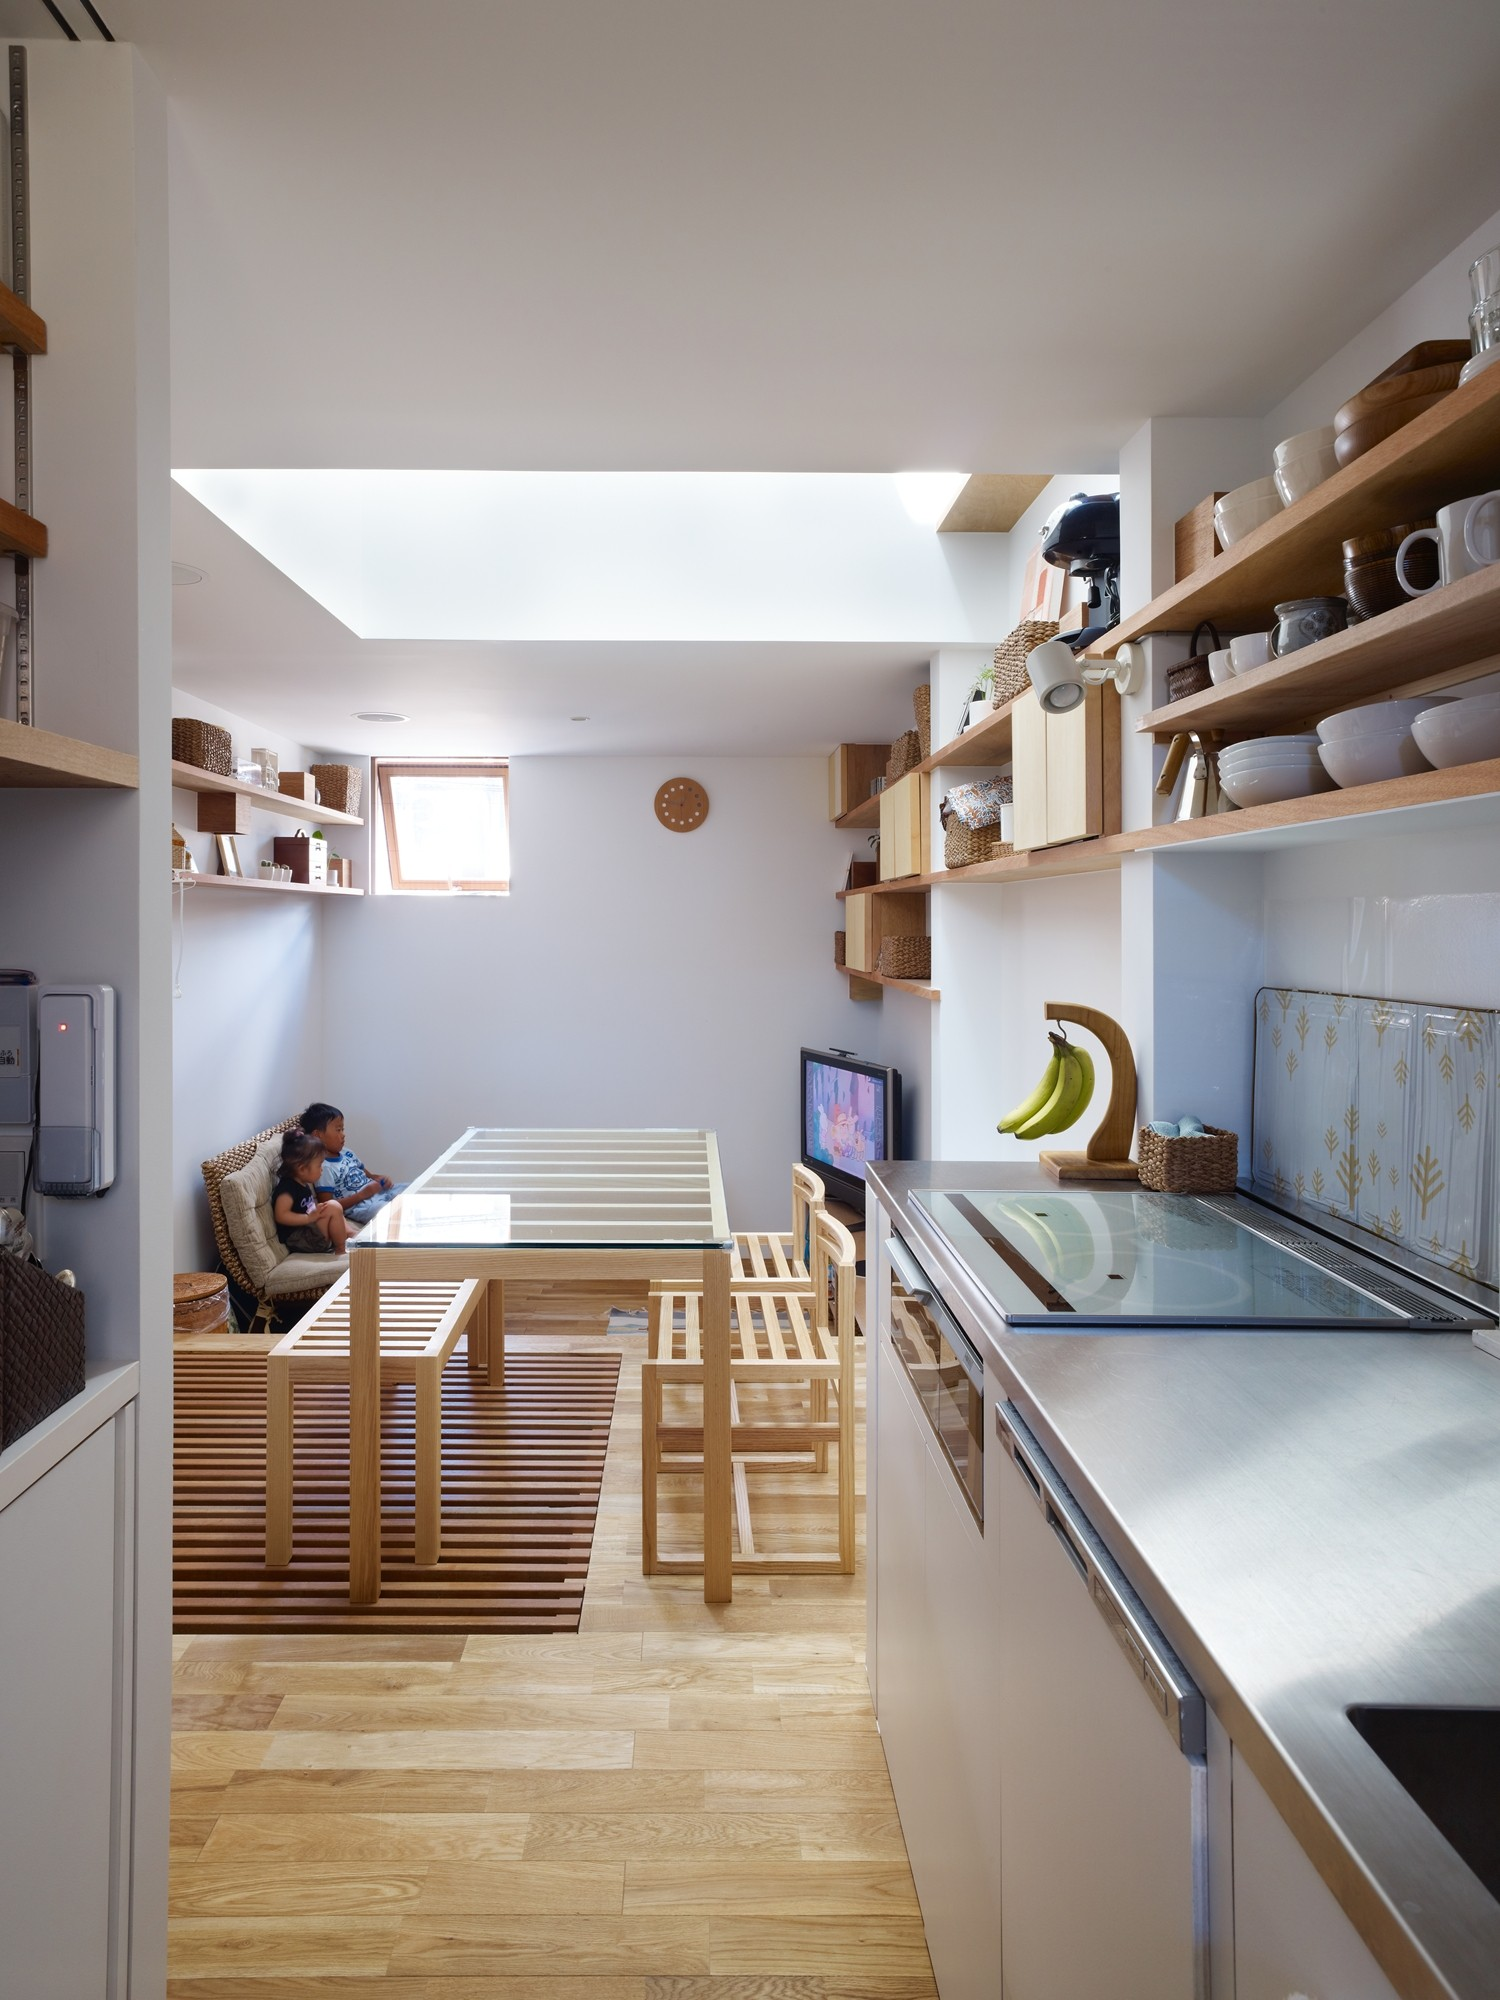 House in Nada / FujiwaraMuro Architects   ArchDaily on small apartment building in japan, houses in tokyo japan, tall skinny building in japan, narrow house interior design, micro houses in japan,